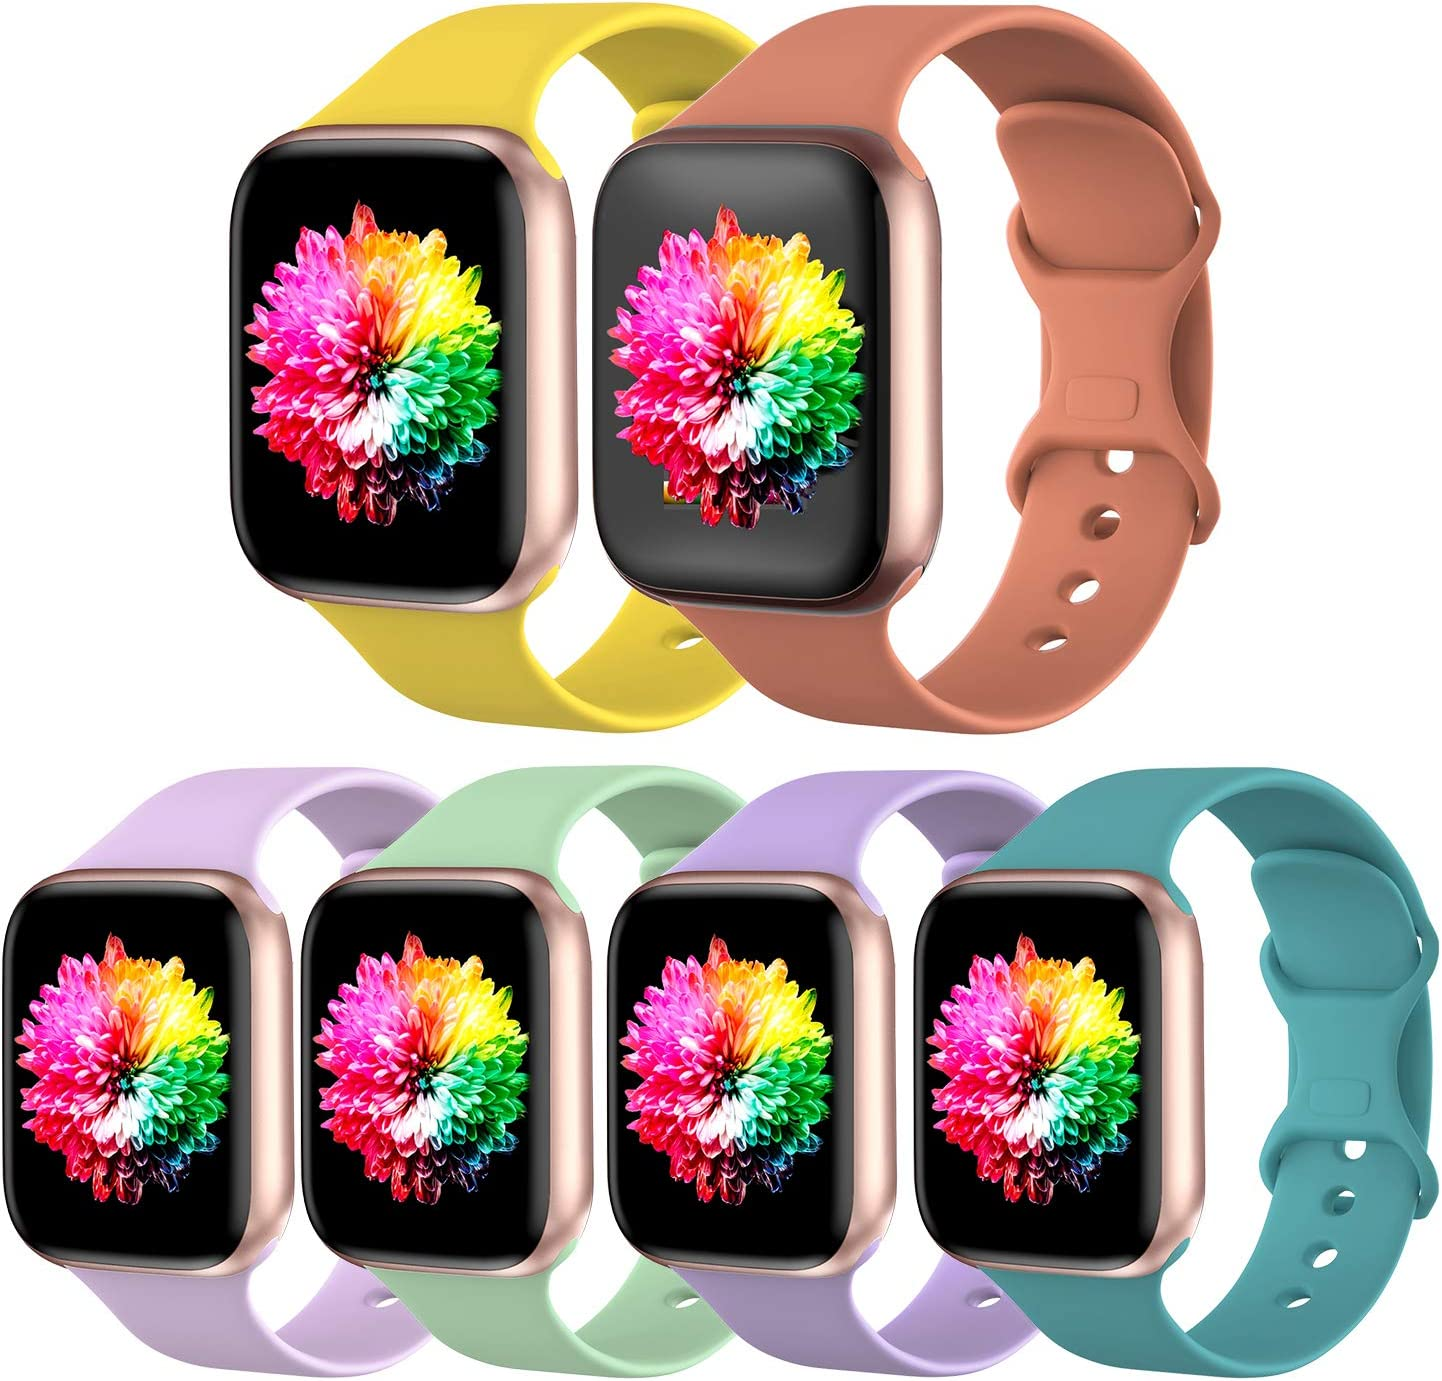 SWHAS 6 Pack Sport Bands Compatible with Apple Watch Band 42mm 44mm 40mm 38mm, Soft Silicone Replacement Strap Compatible with iWatch Series SE/6/5/4/3/2/1,S/M,Pack J